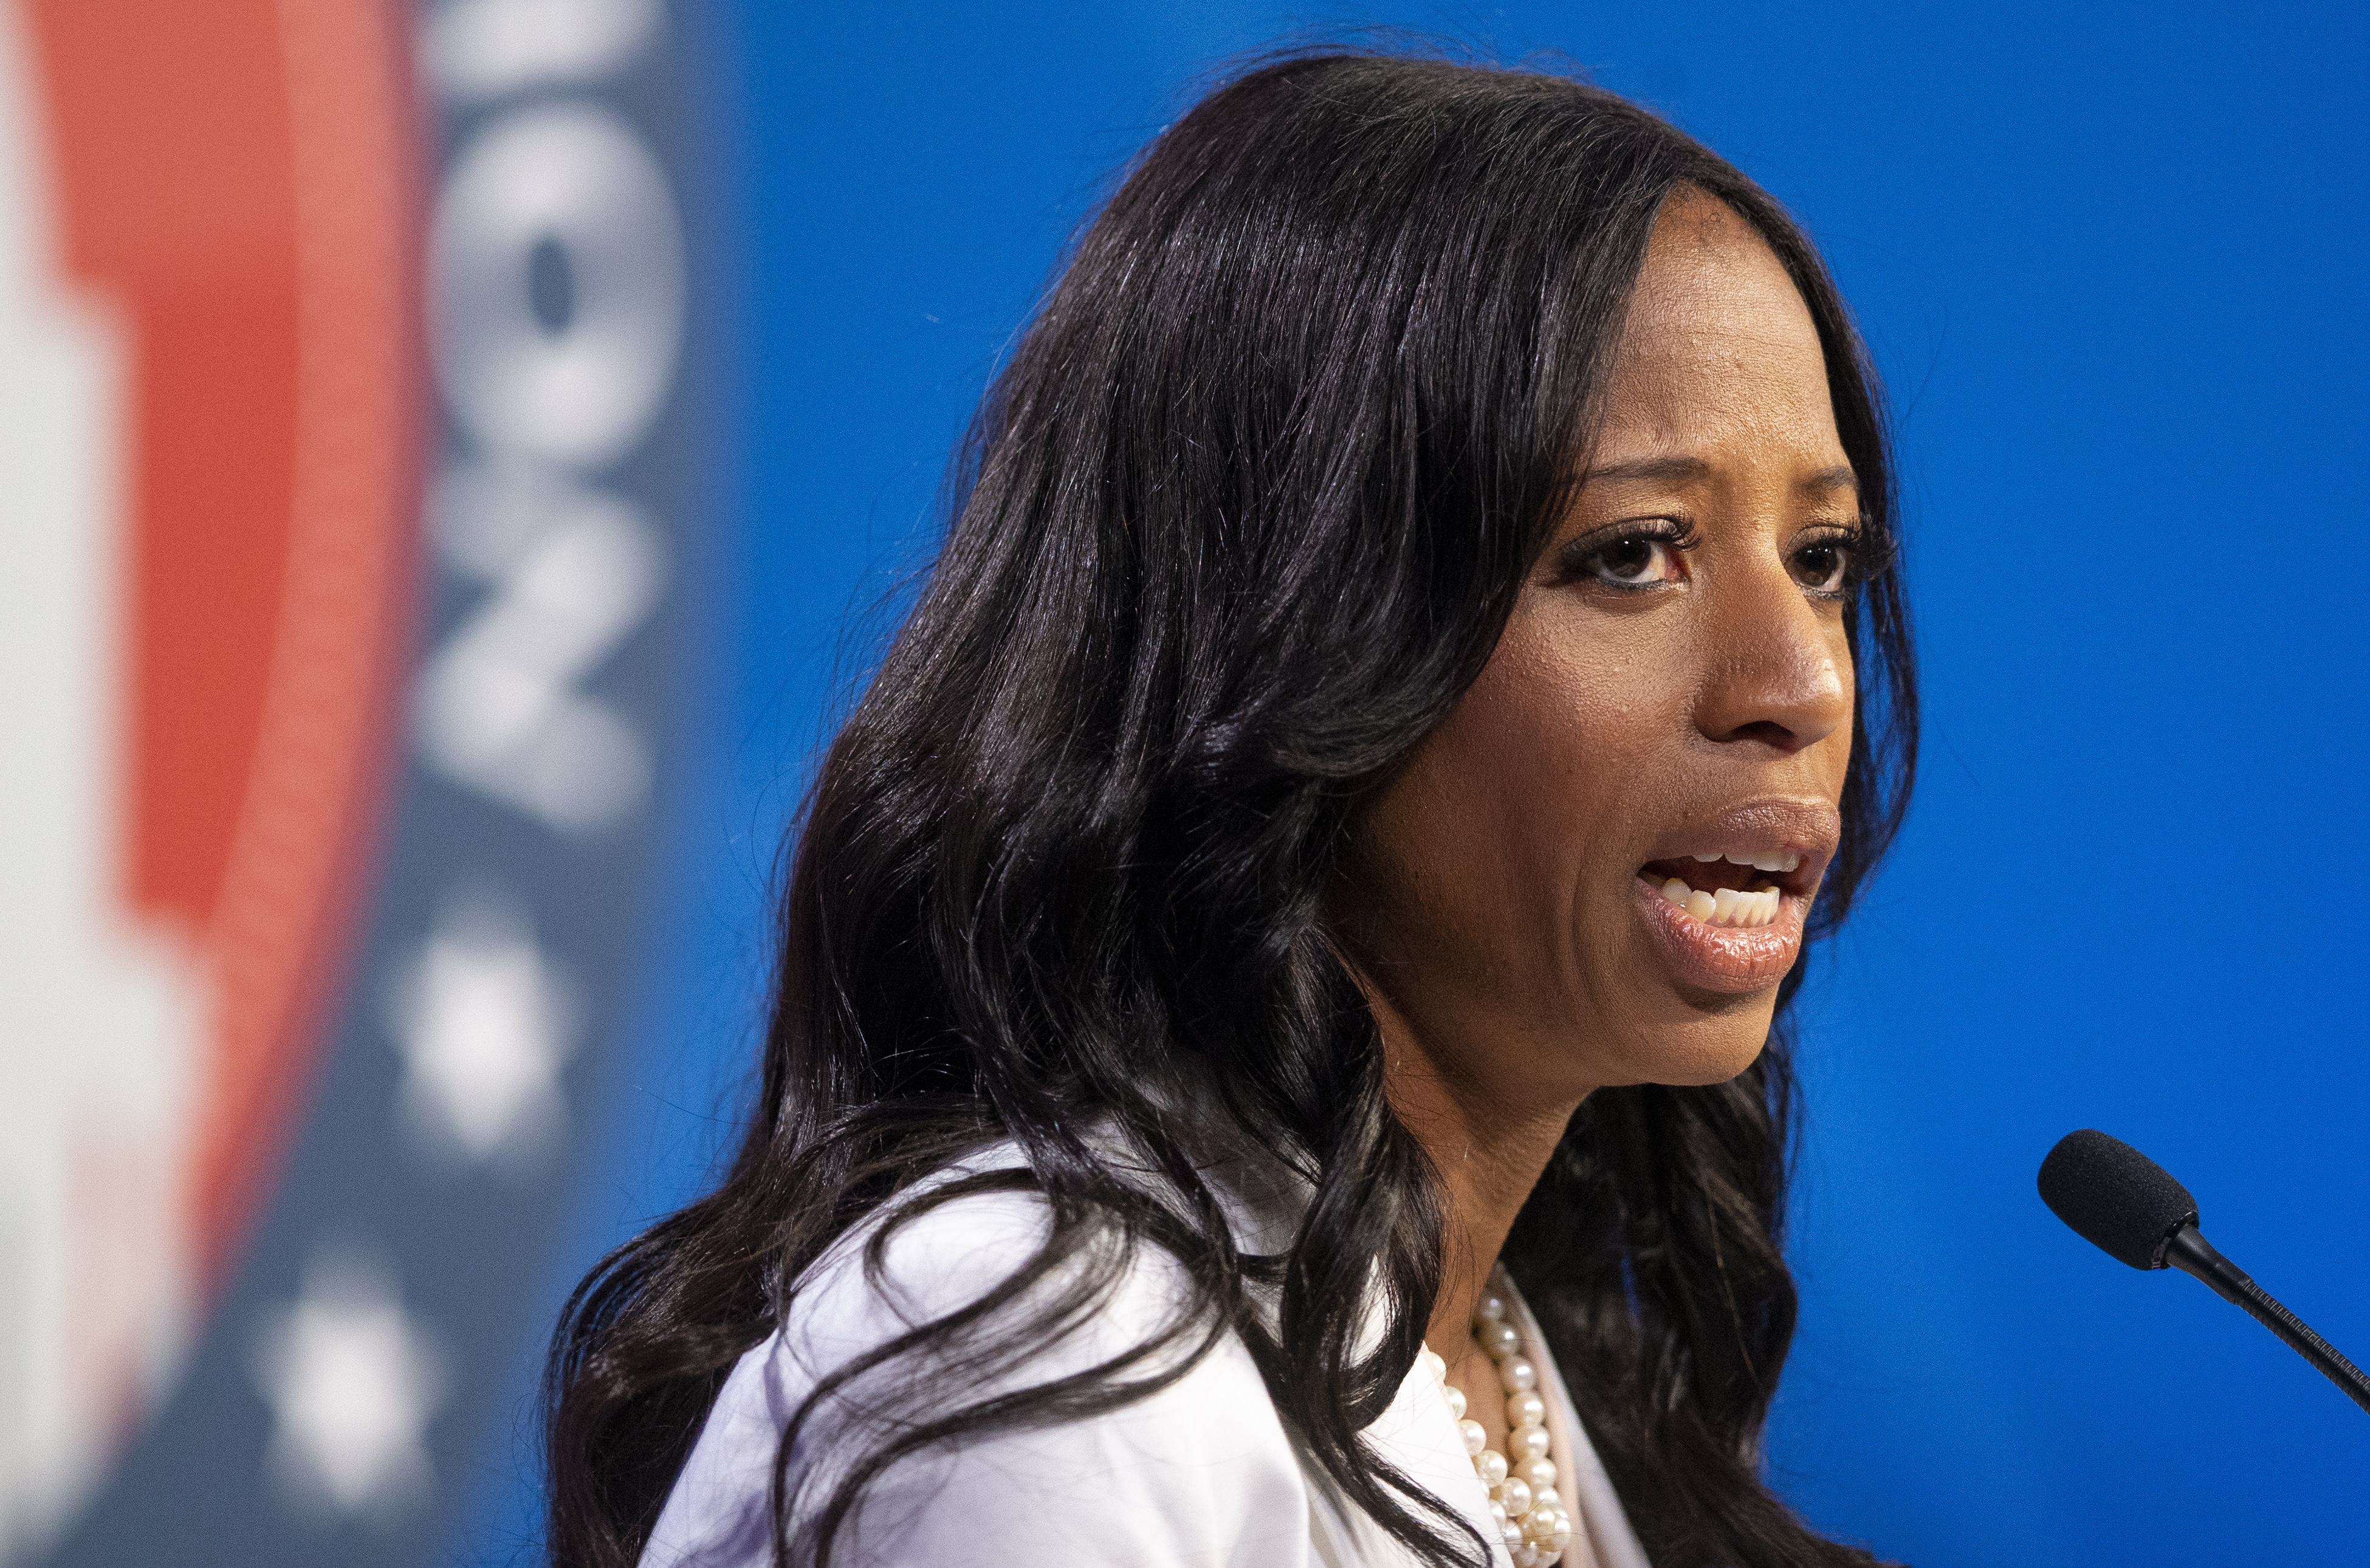 Virgin Islands GOP reports spending big to help Mia Love — but it's a scam, according to her campaign